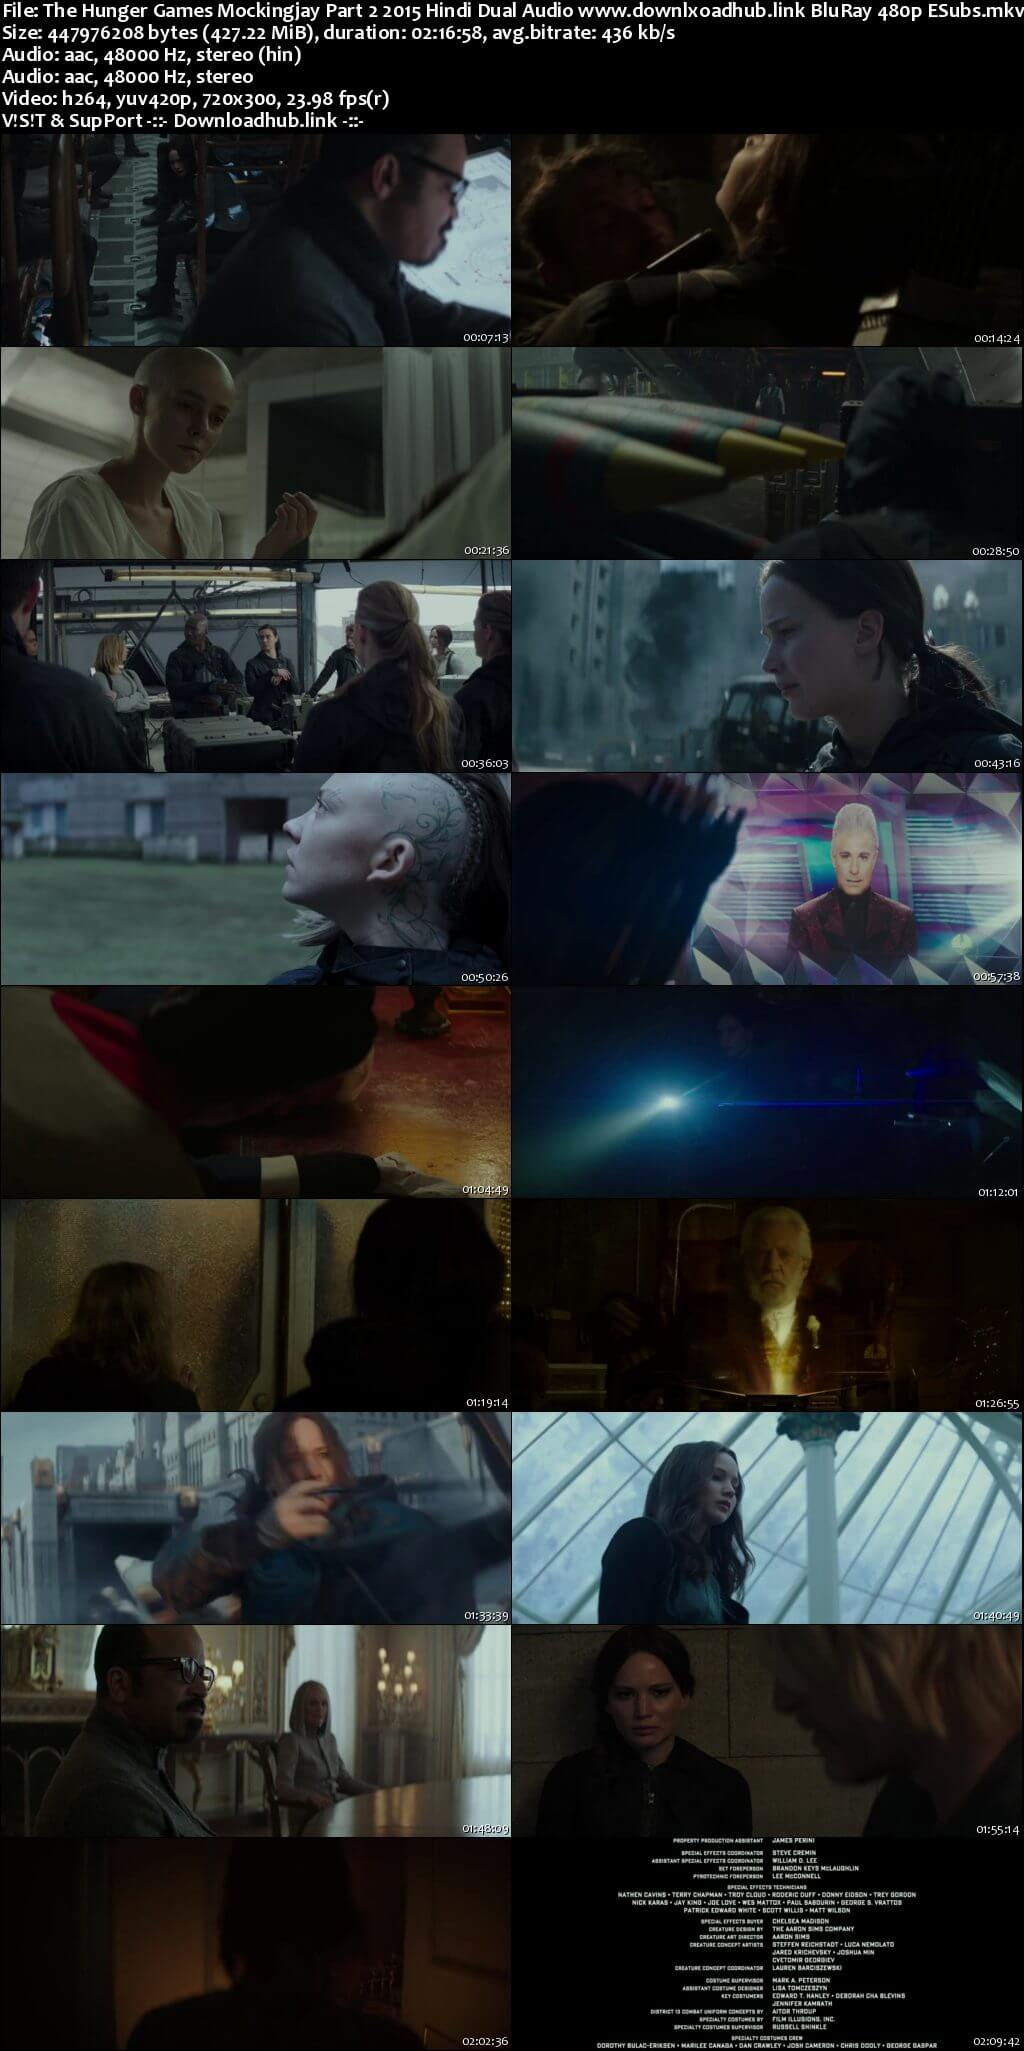 hunger games mockingjay part 2 full movie download dual audio